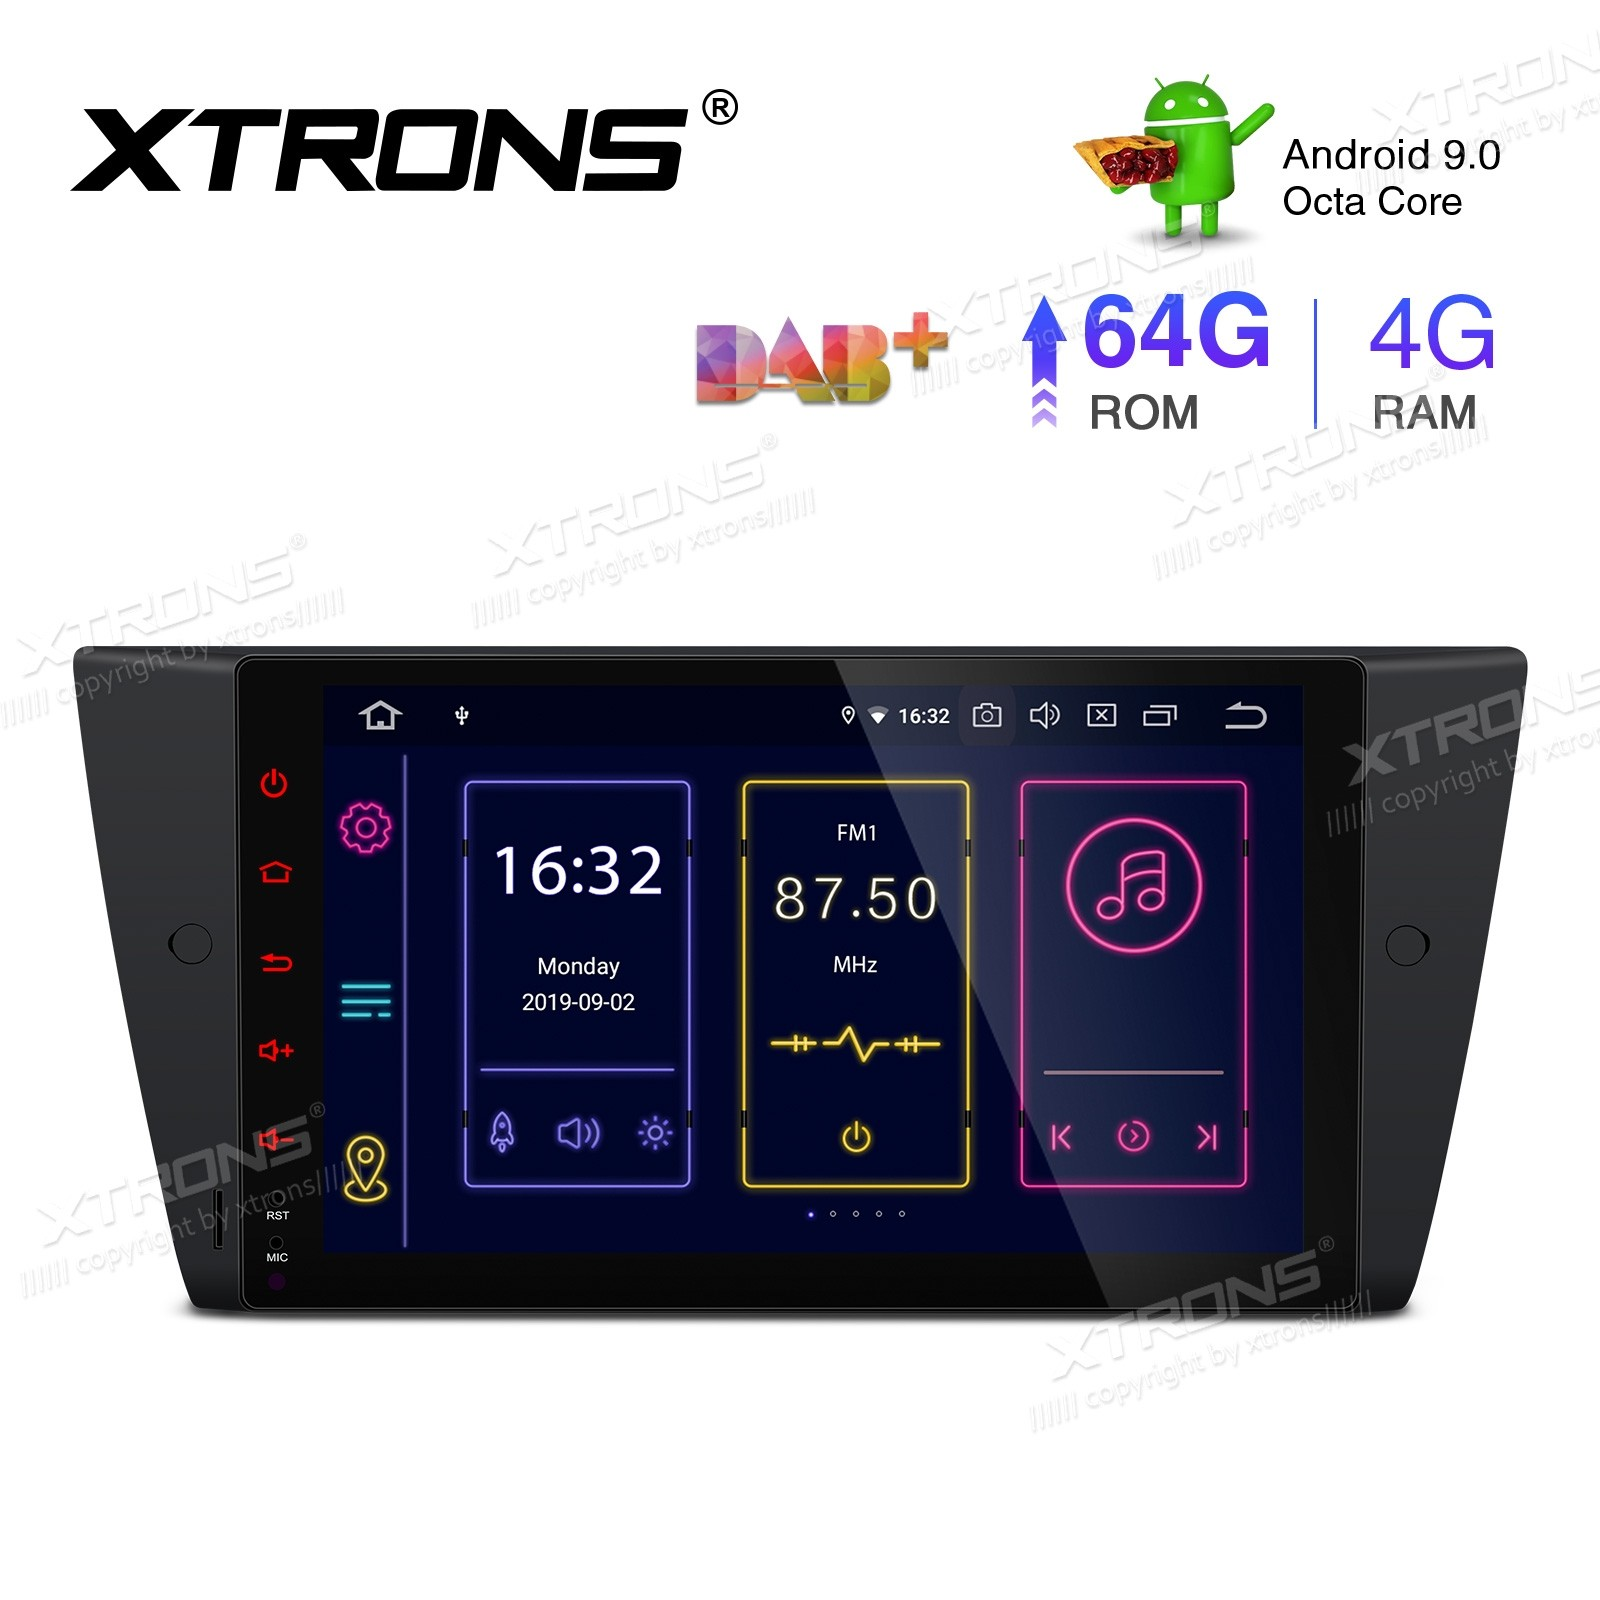 9 inch Android 9.0 Octa-Core 64G ROM + 4G RAM Plug & Play Design Car Stereo Multimedia GPS System Fit for BMW